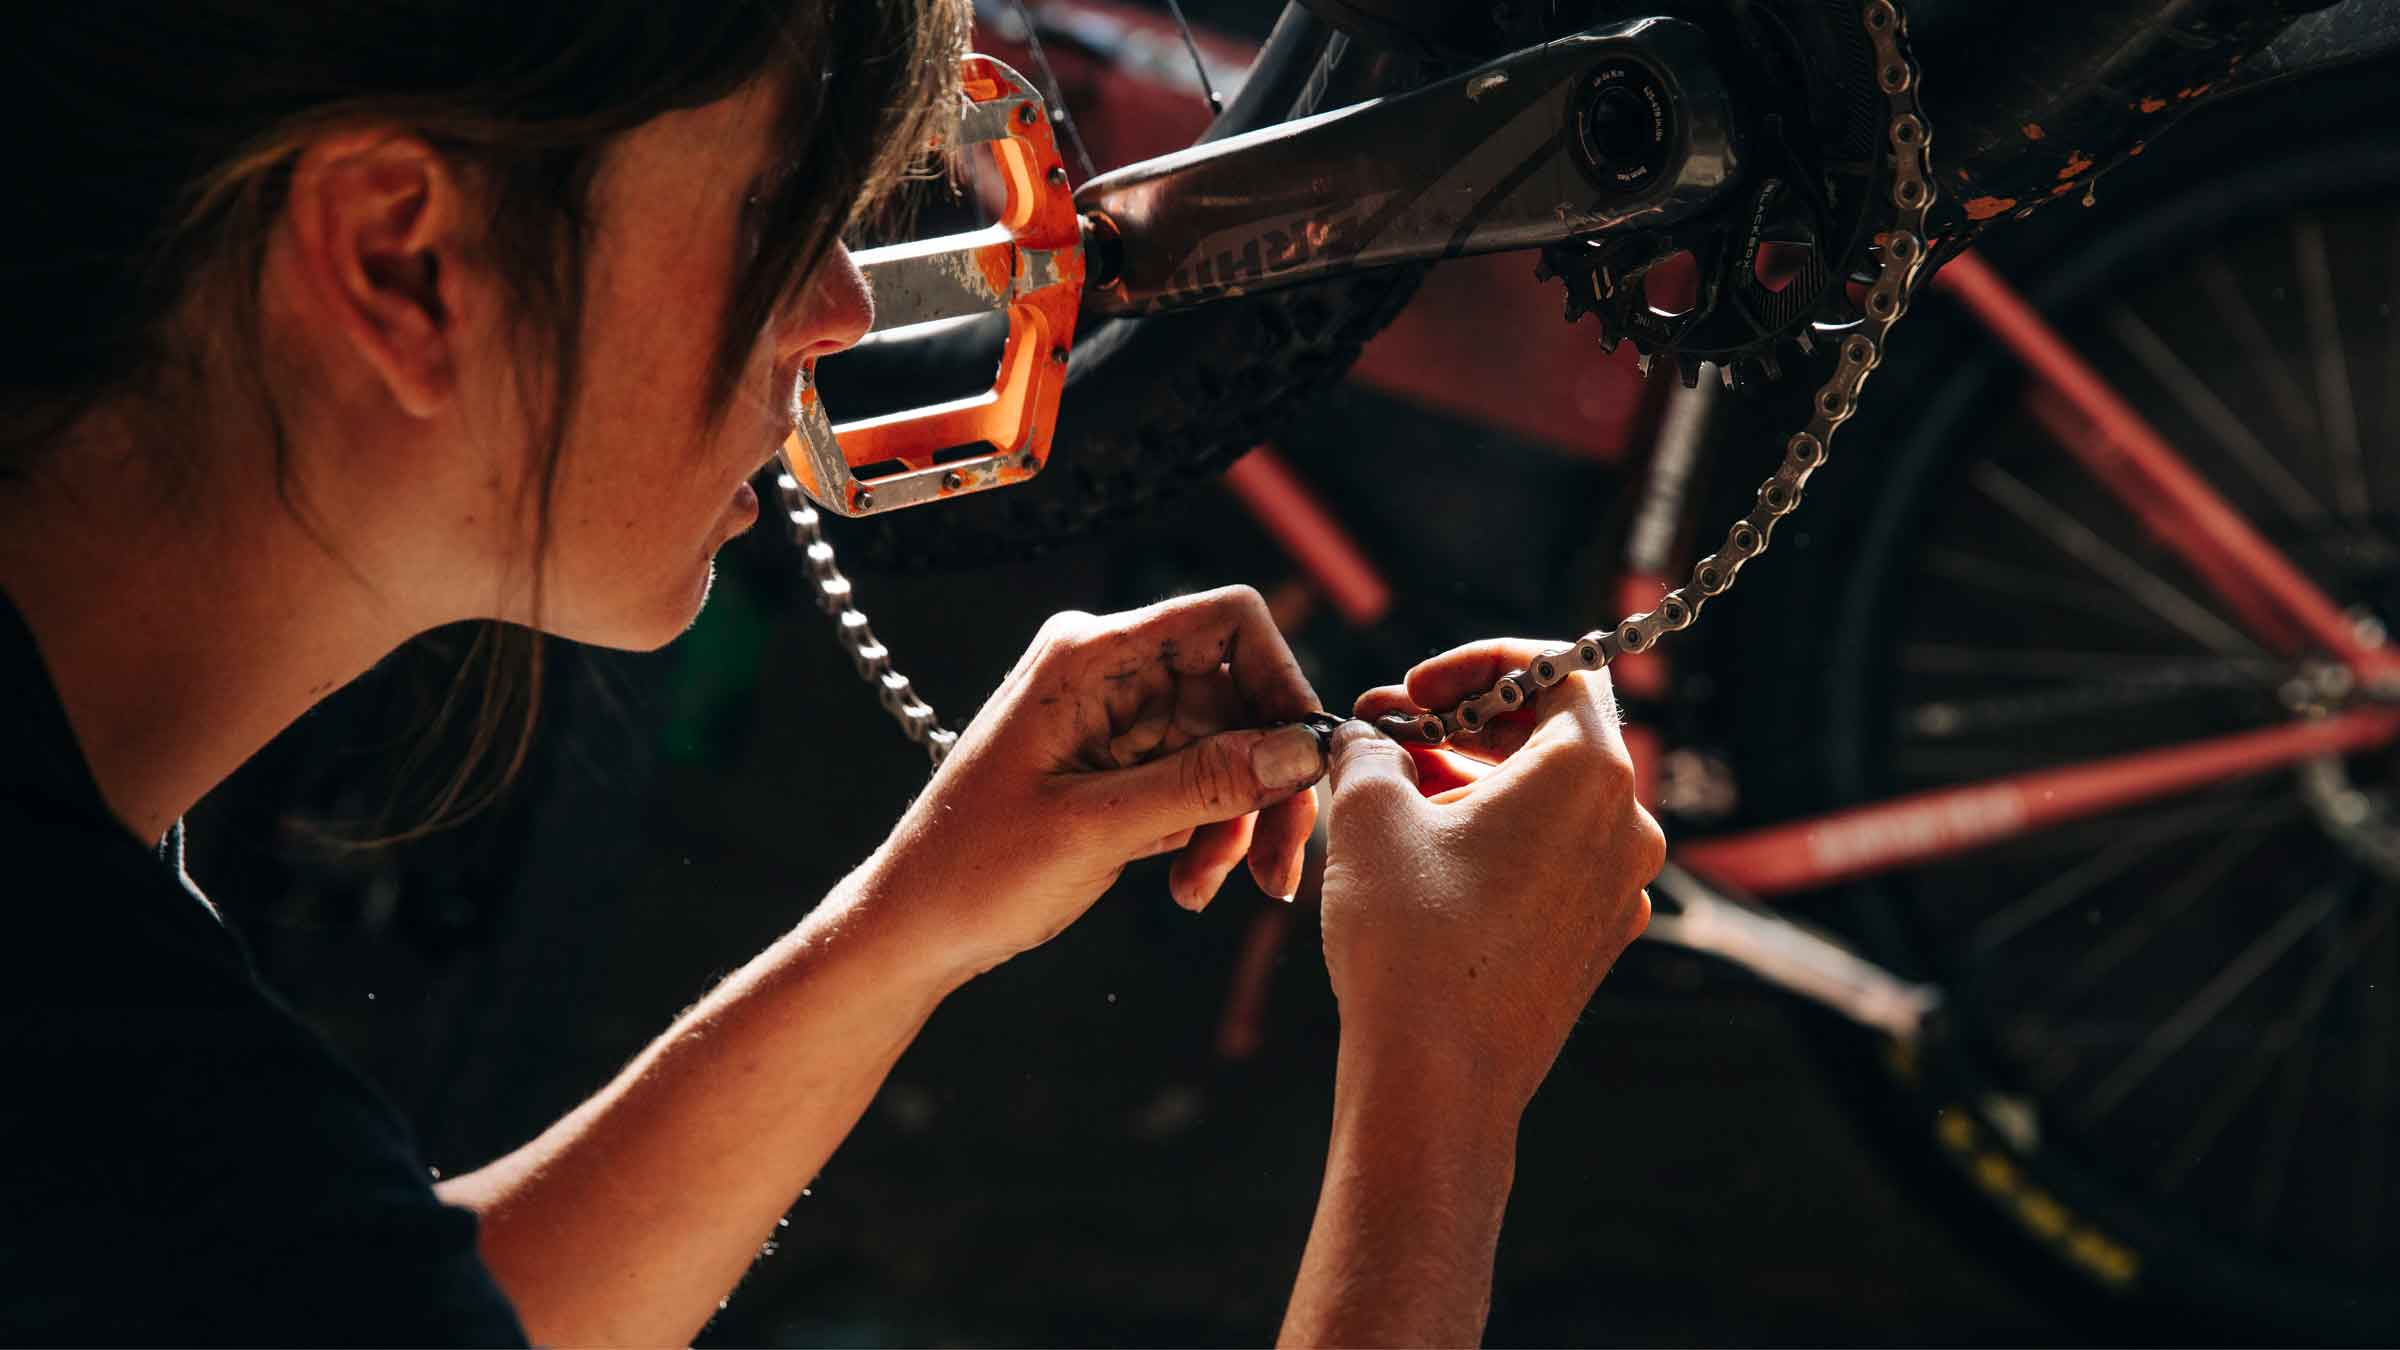 Free Women's Bike Maintenance Basics Class at REI